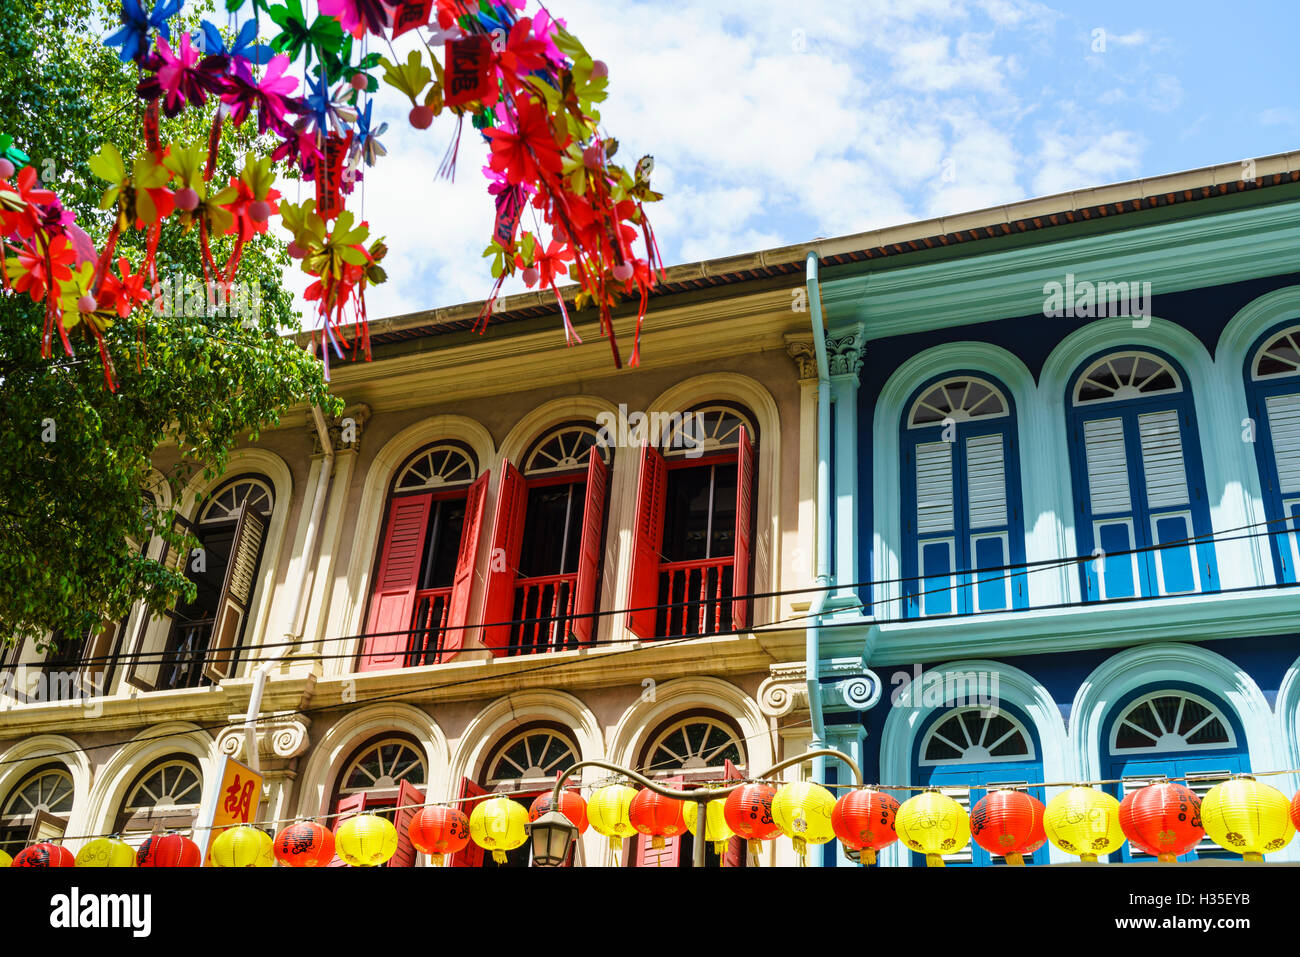 Restored and colourfully painted old shophouses in Chinatown, Singapore - Stock Image